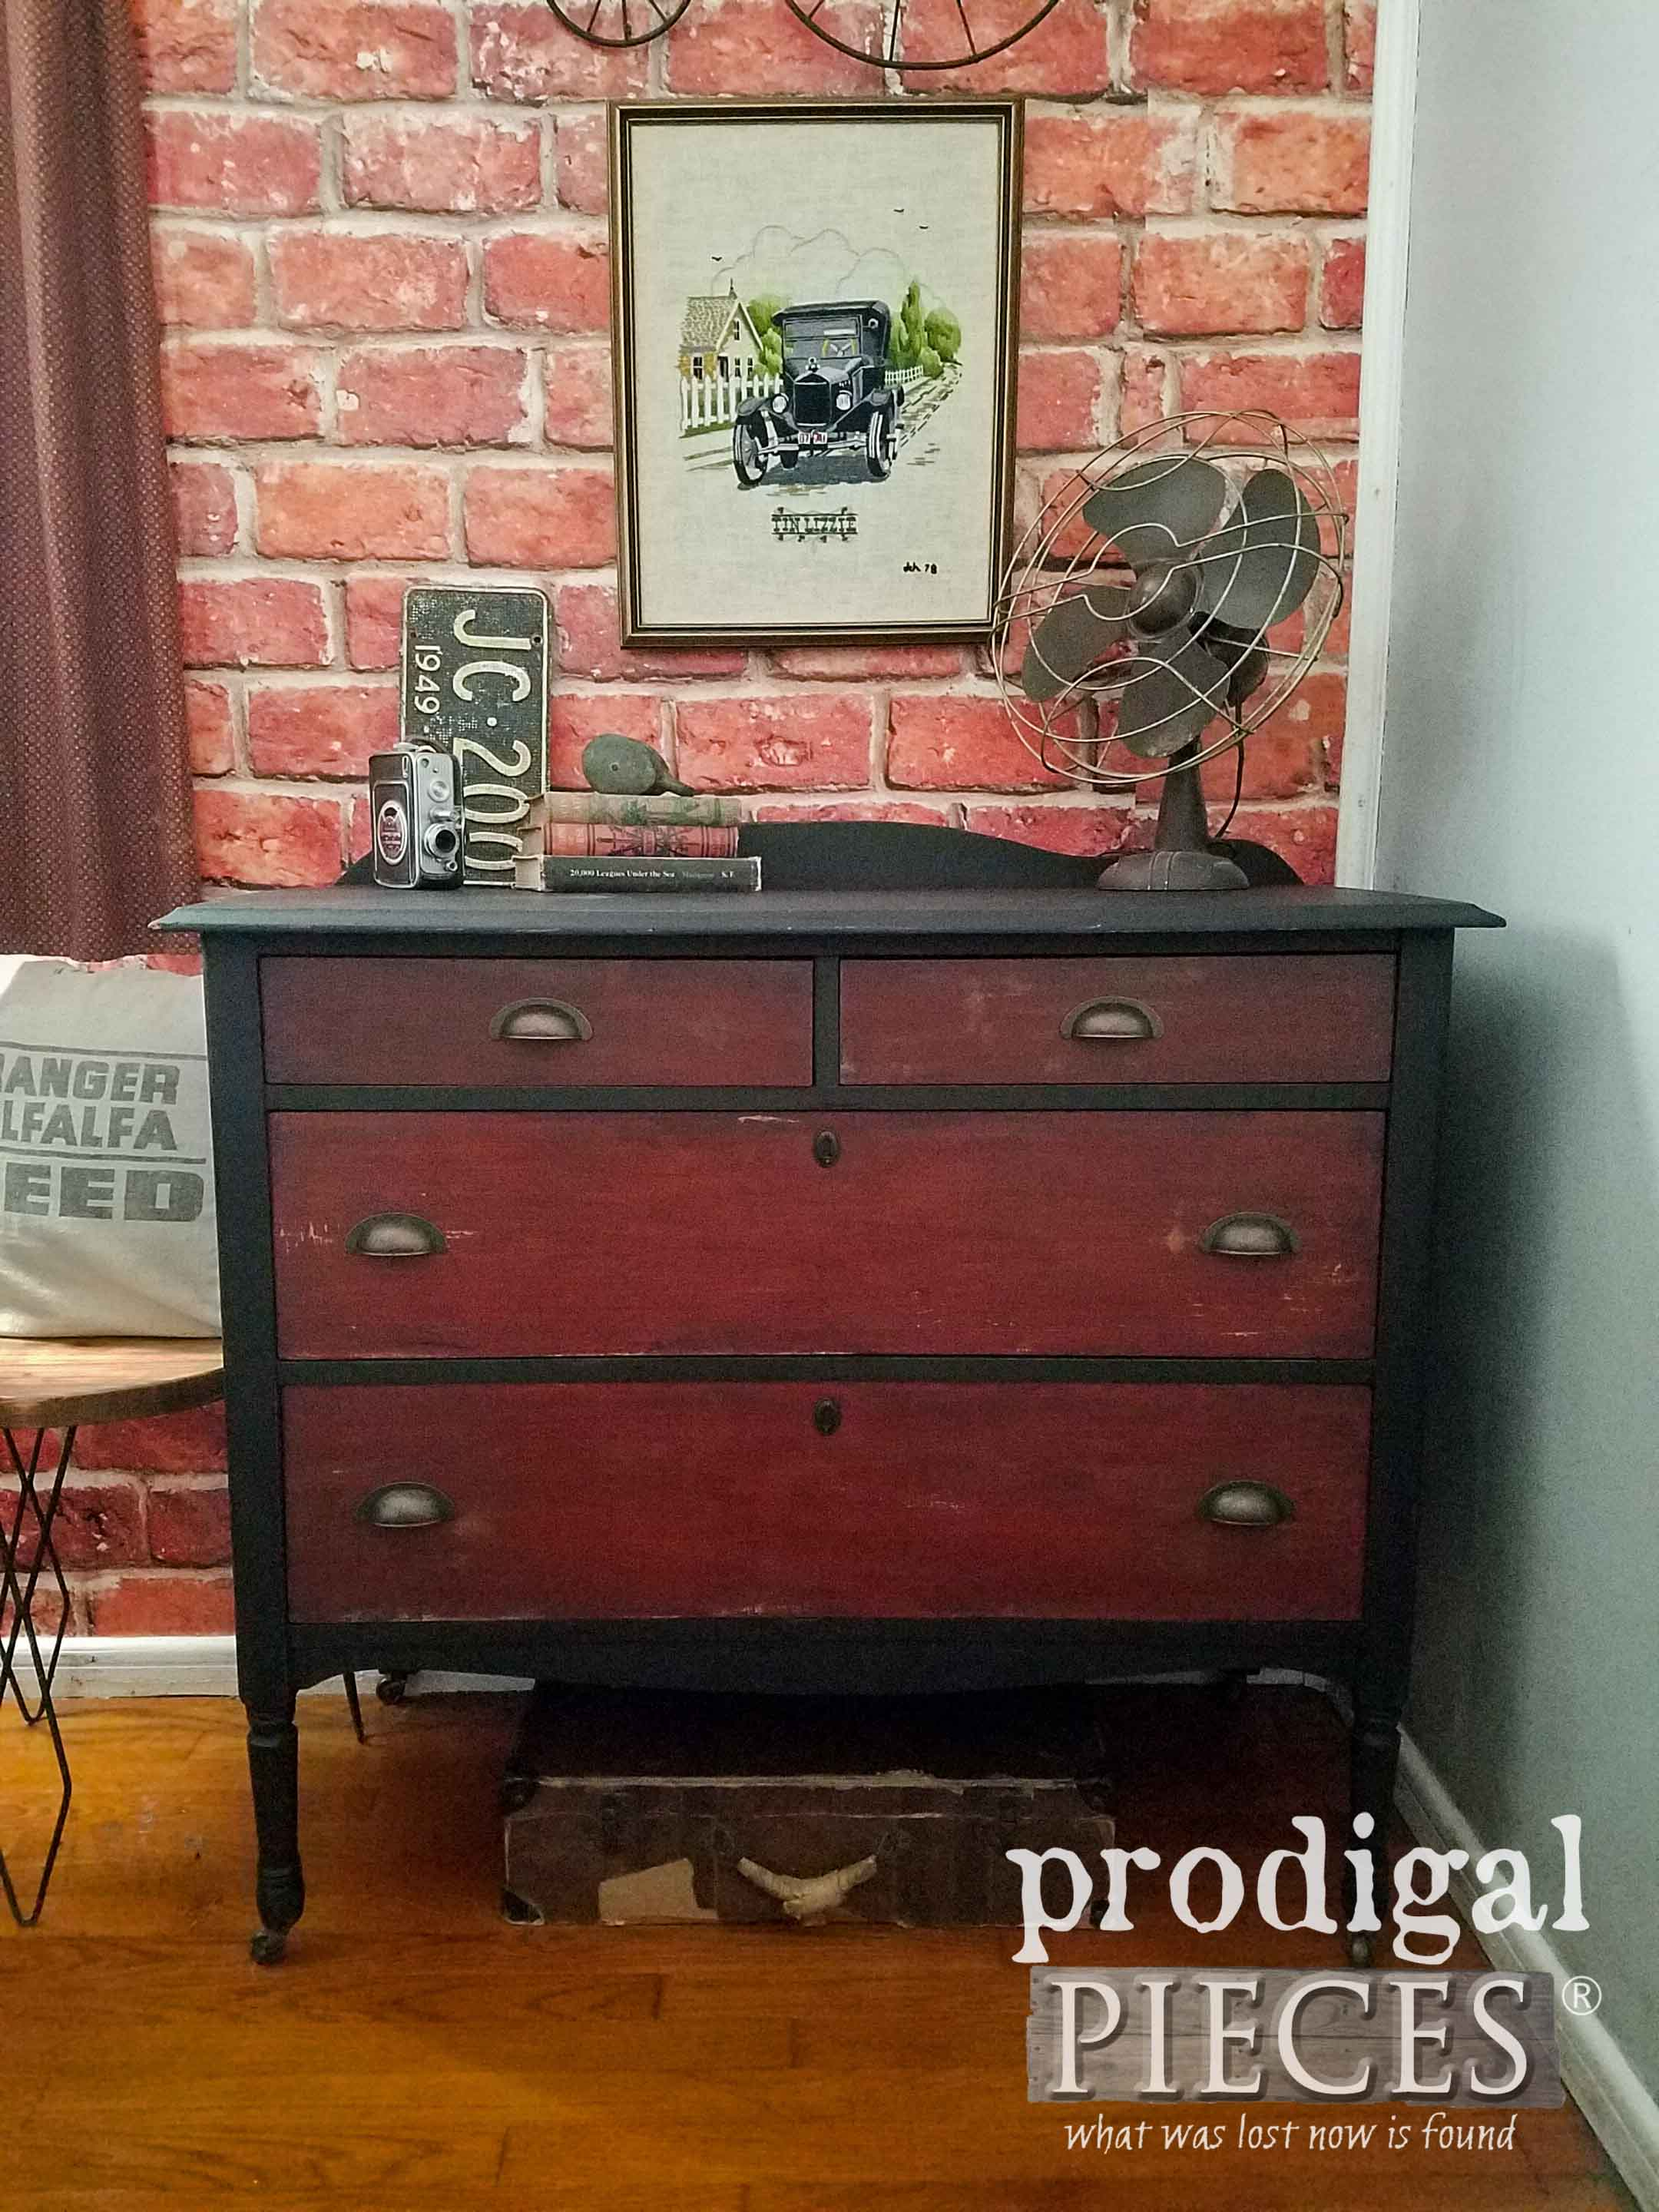 Rustic Industrial Furniture Makeover of a Vintage Chest of Drawers by Prodigal Pieces | prodigalpieces.com